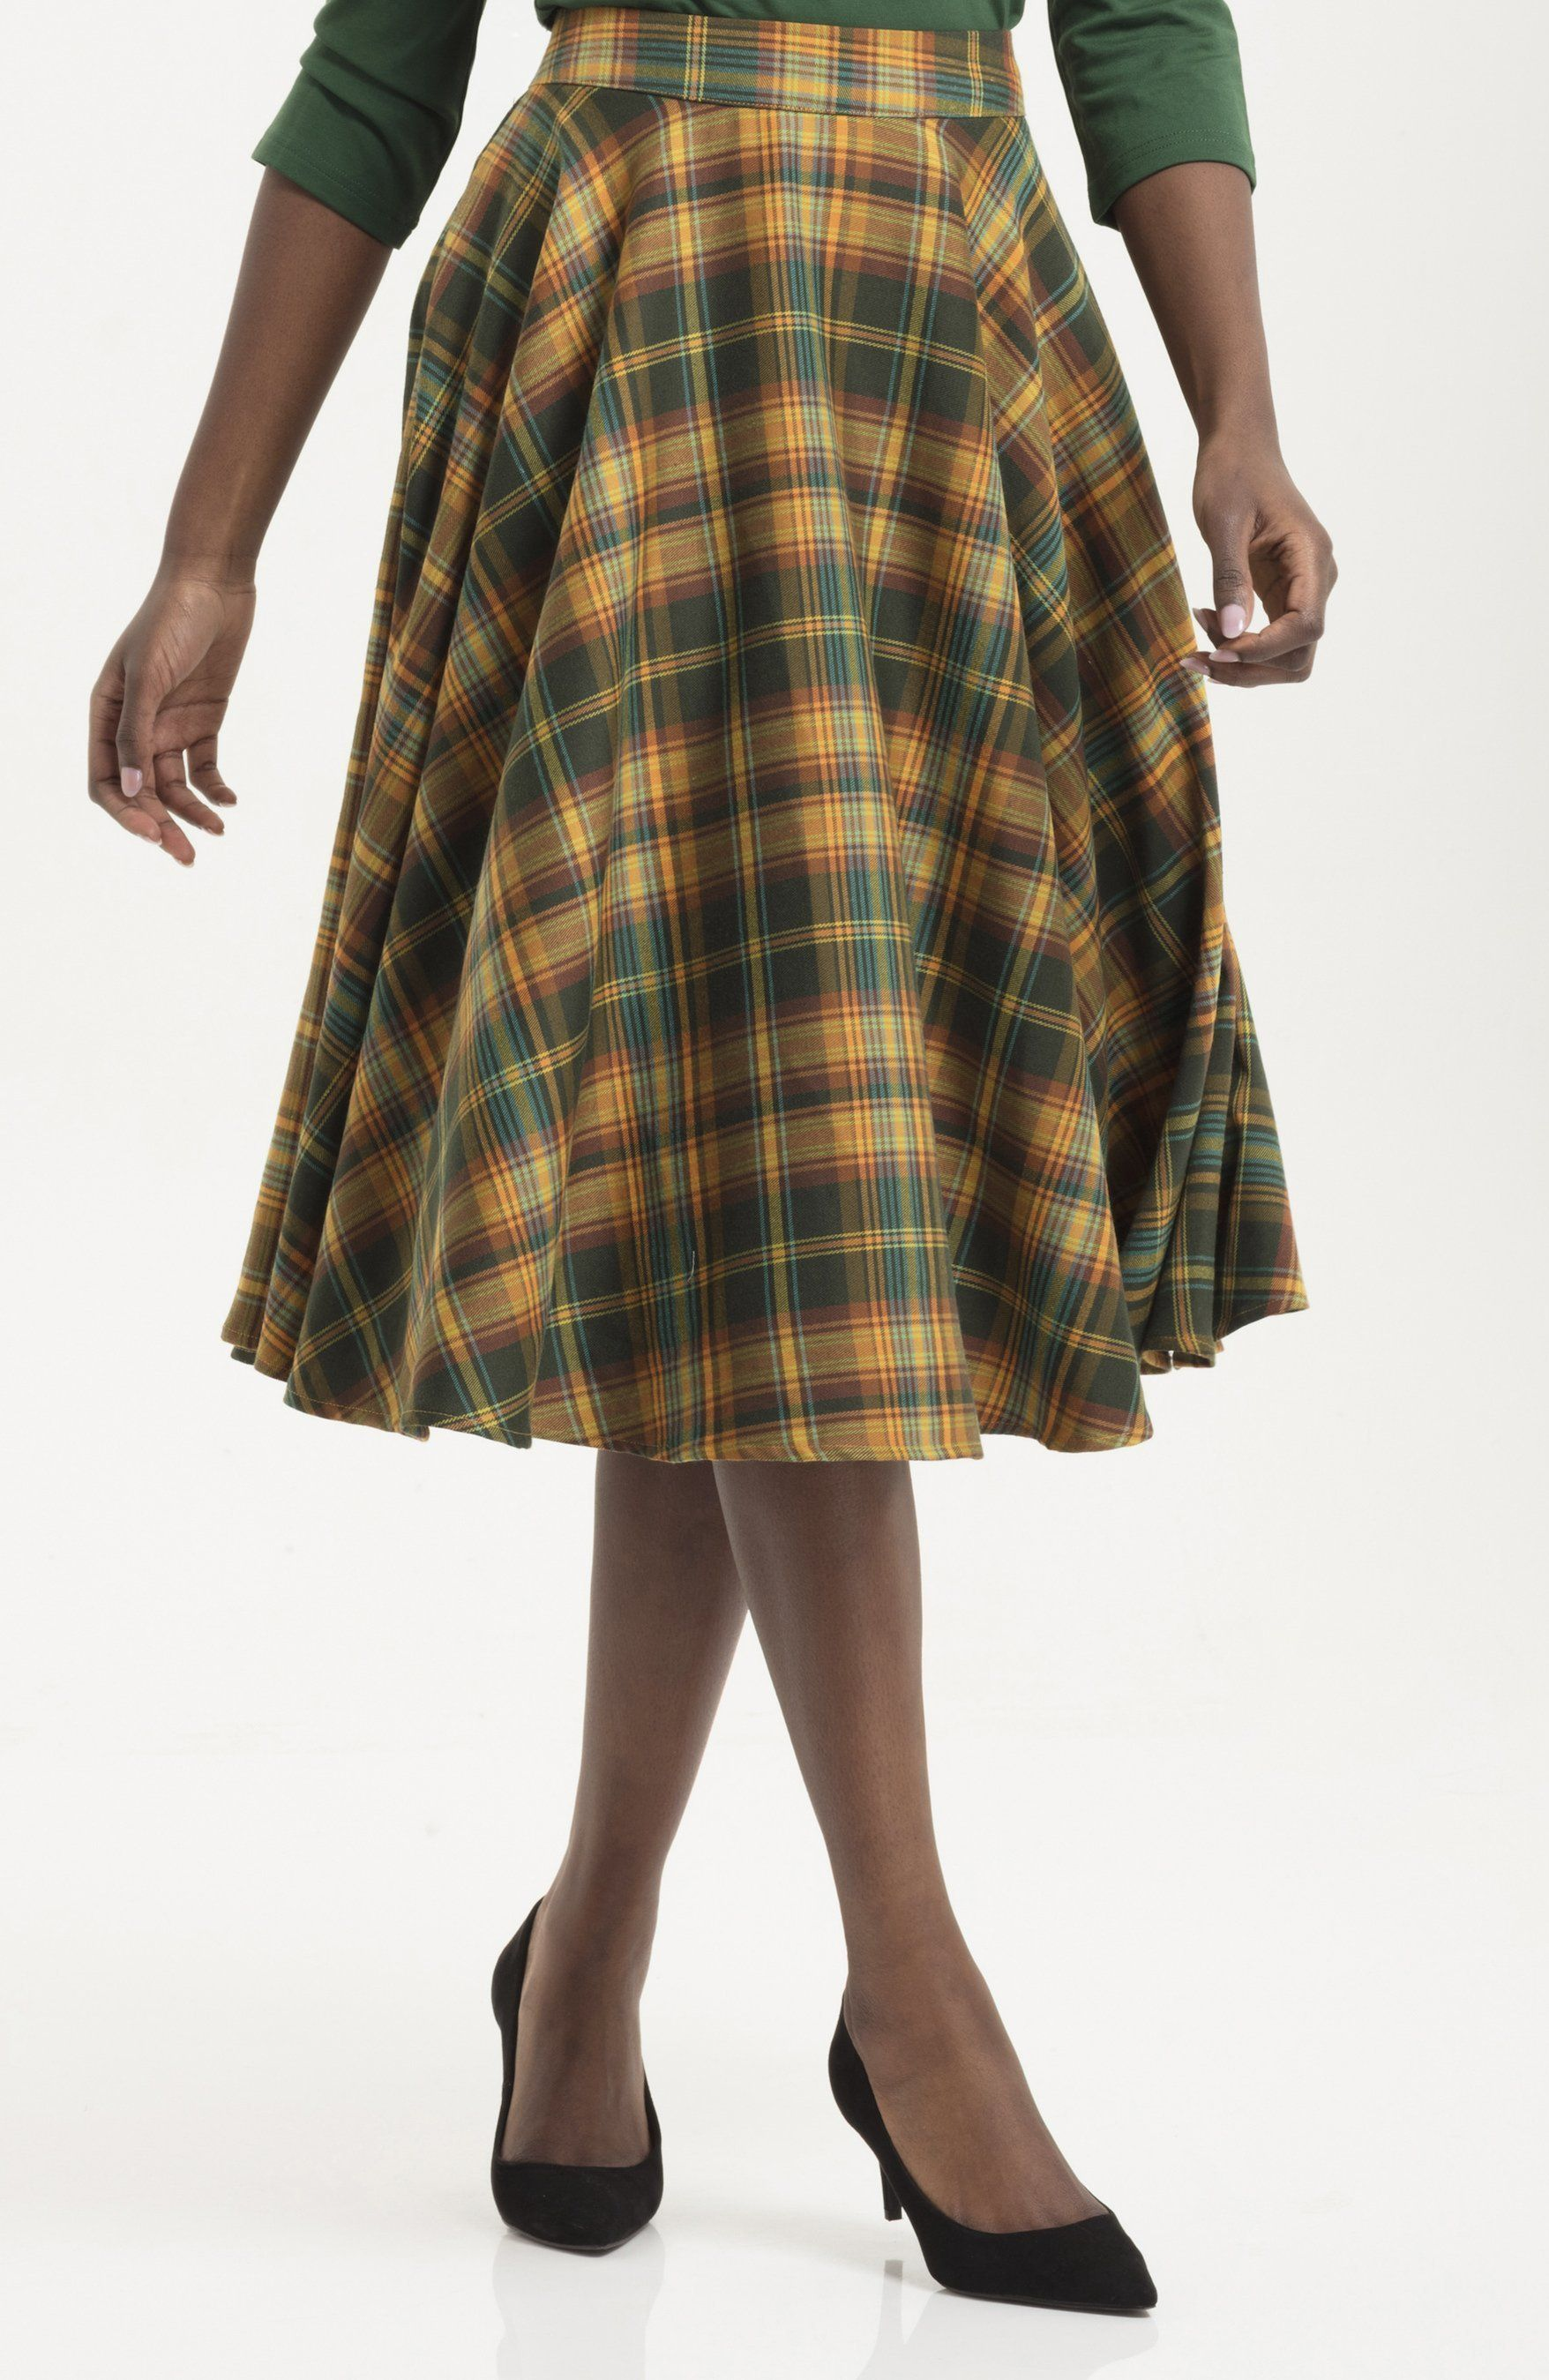 80848333be1 Bridget Tartan Skirt in Olive   Mustard Plaid Skirts